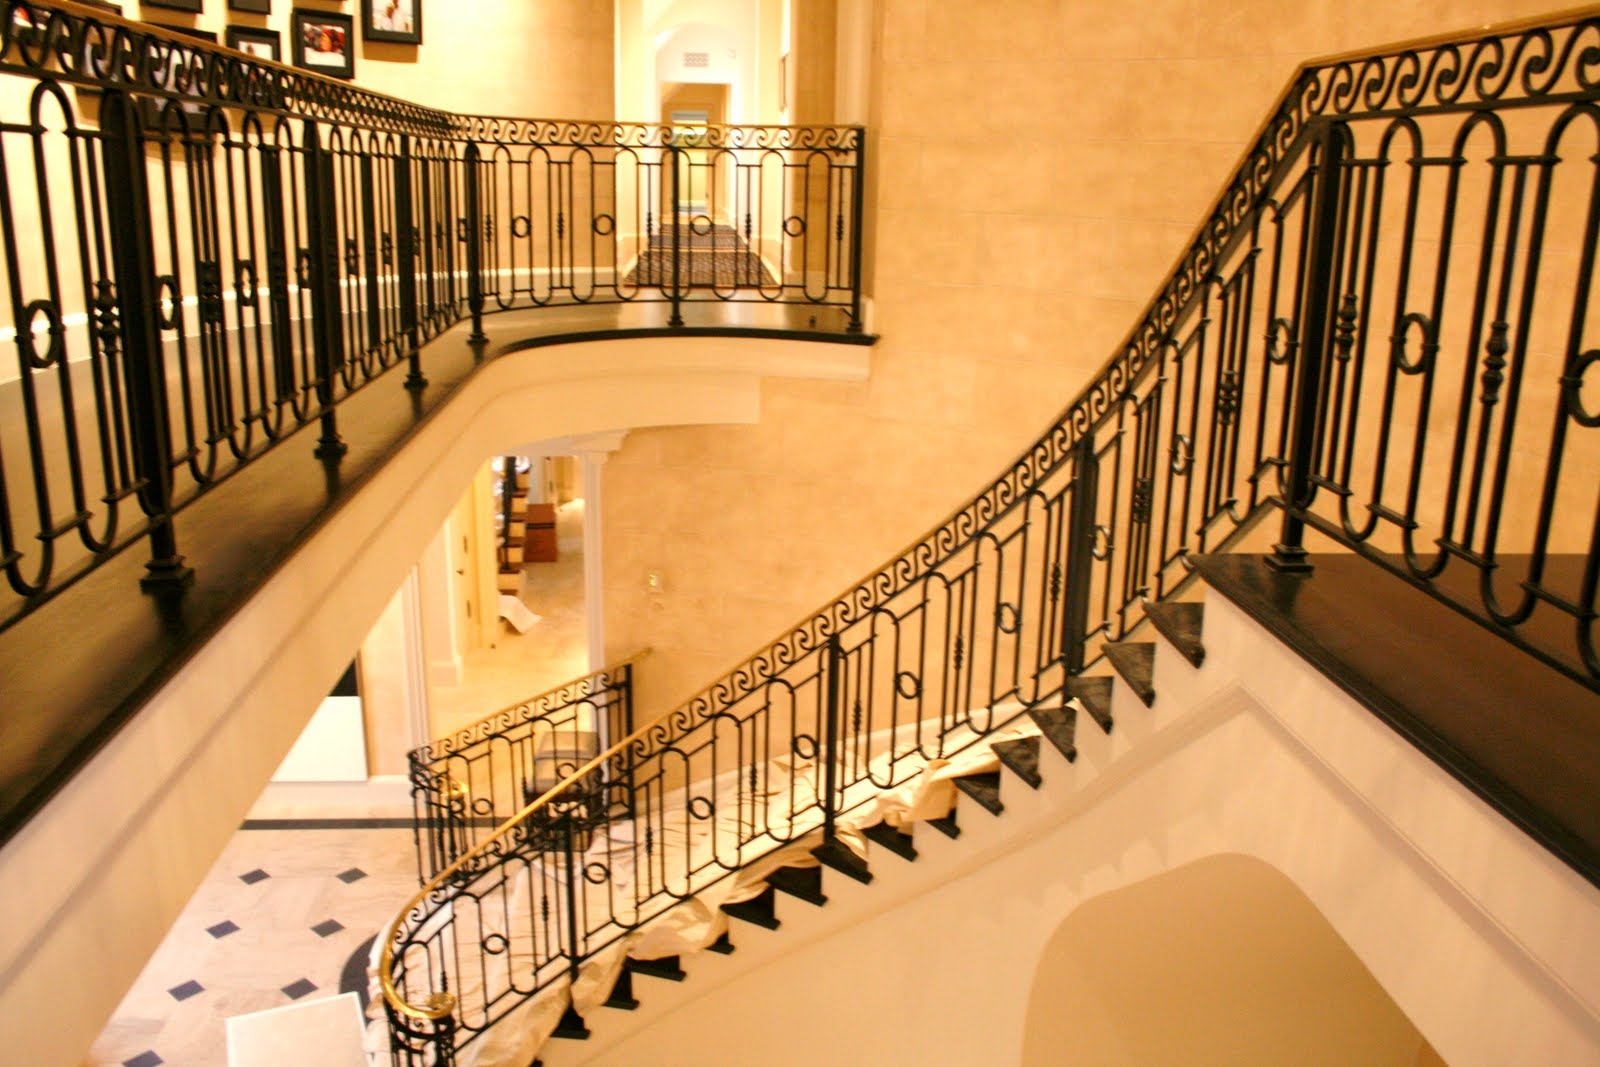 Wrought Iron Outdoor Stair Railings Made To Order | Wrought Iron Steps Outdoor | Wood Interior | Current | Iron Handrail | Staircase | Backyard